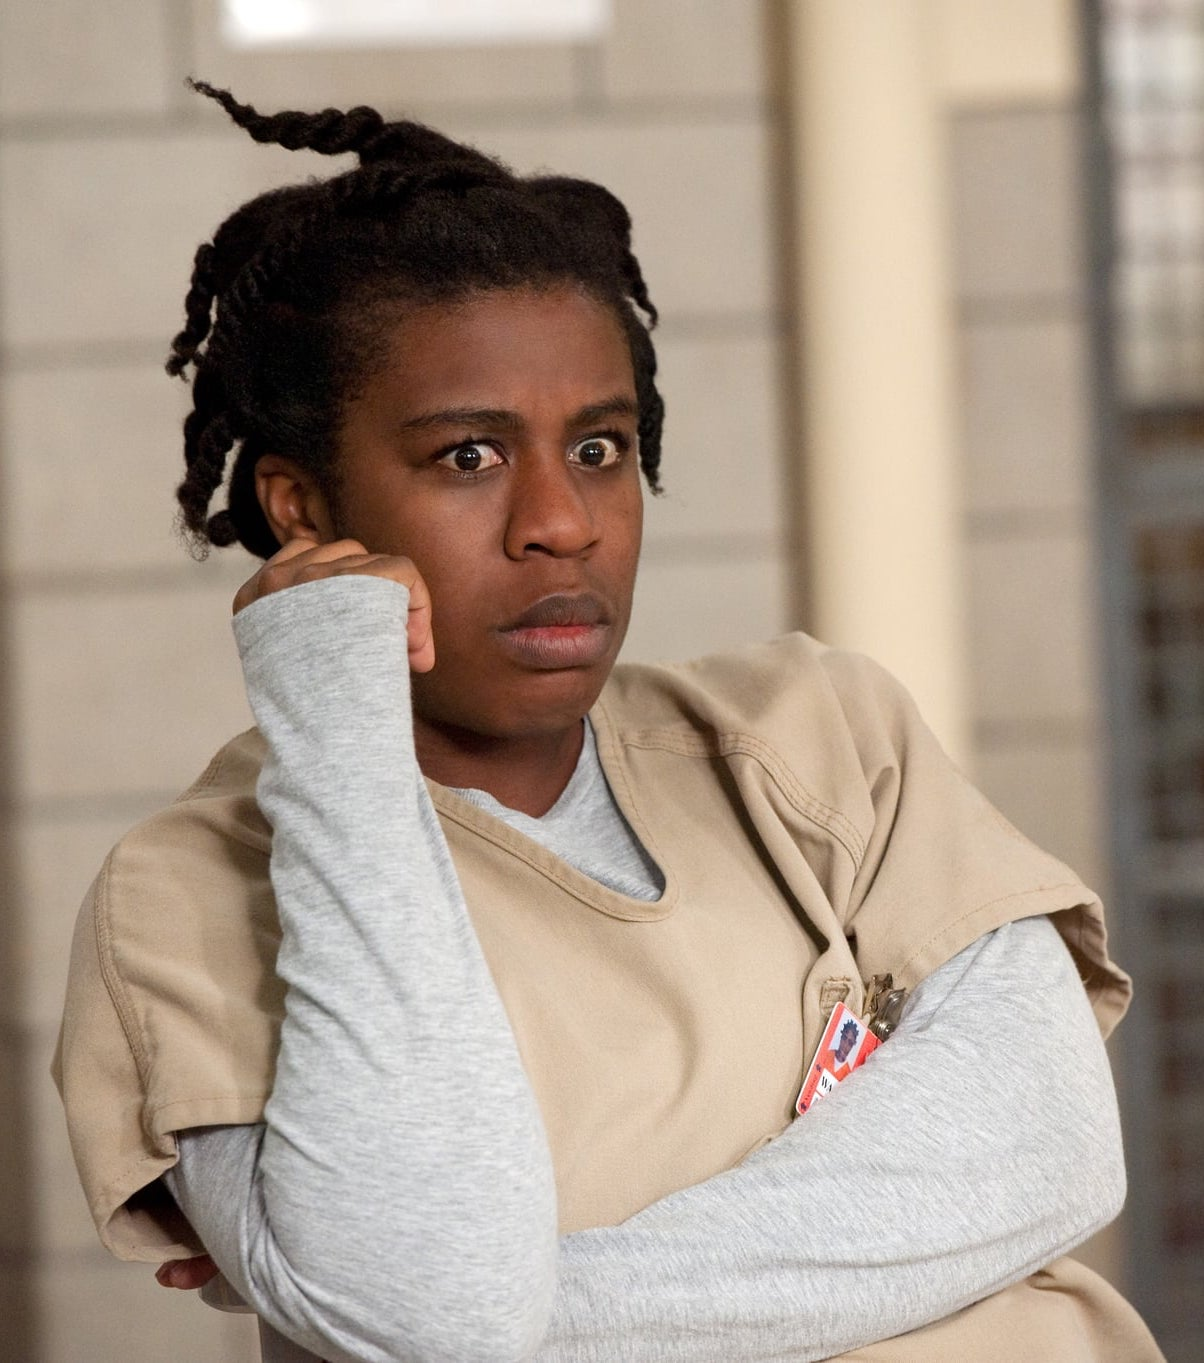 da75989137a8c88a TCDORIS EC198 H 25 Things You Didn't Know About Orange Is The New Black